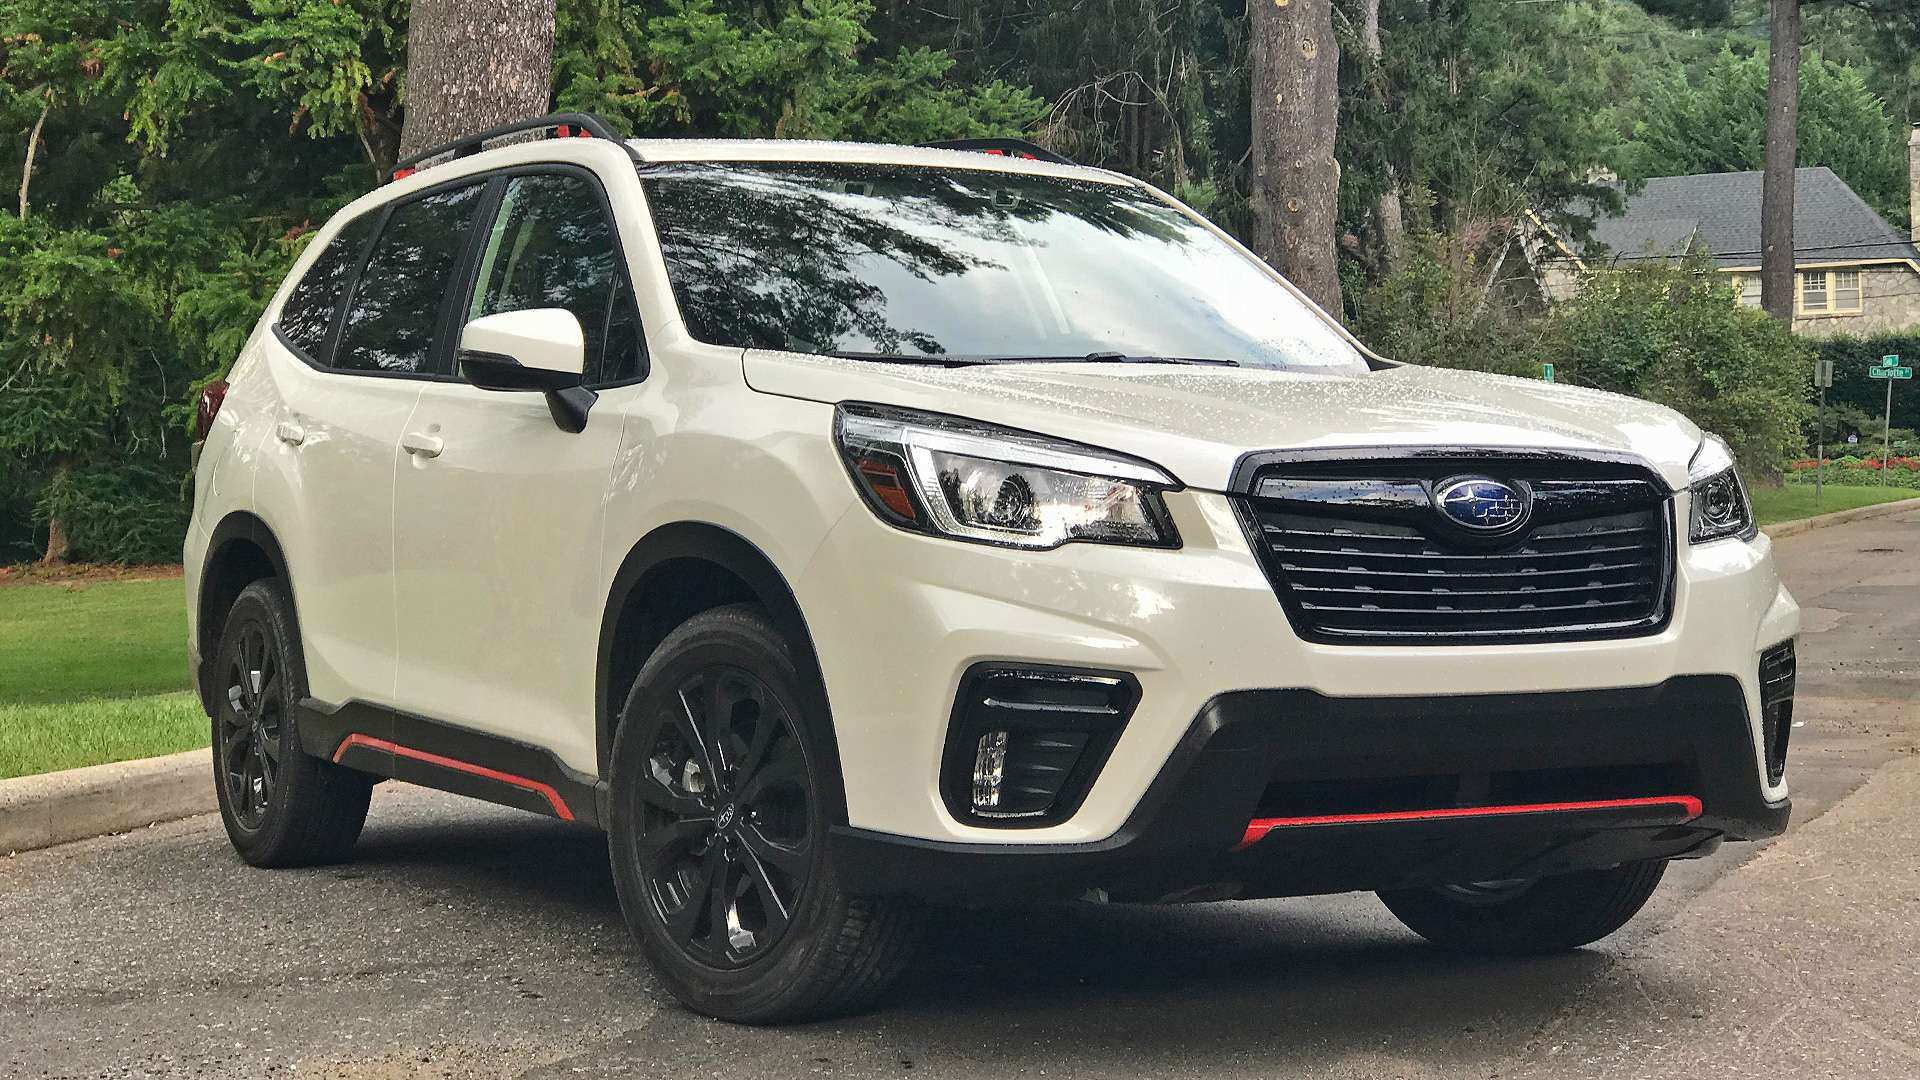 90 Best Review Subaru Forester 2020 Review Performance and New Engine by Subaru Forester 2020 Review